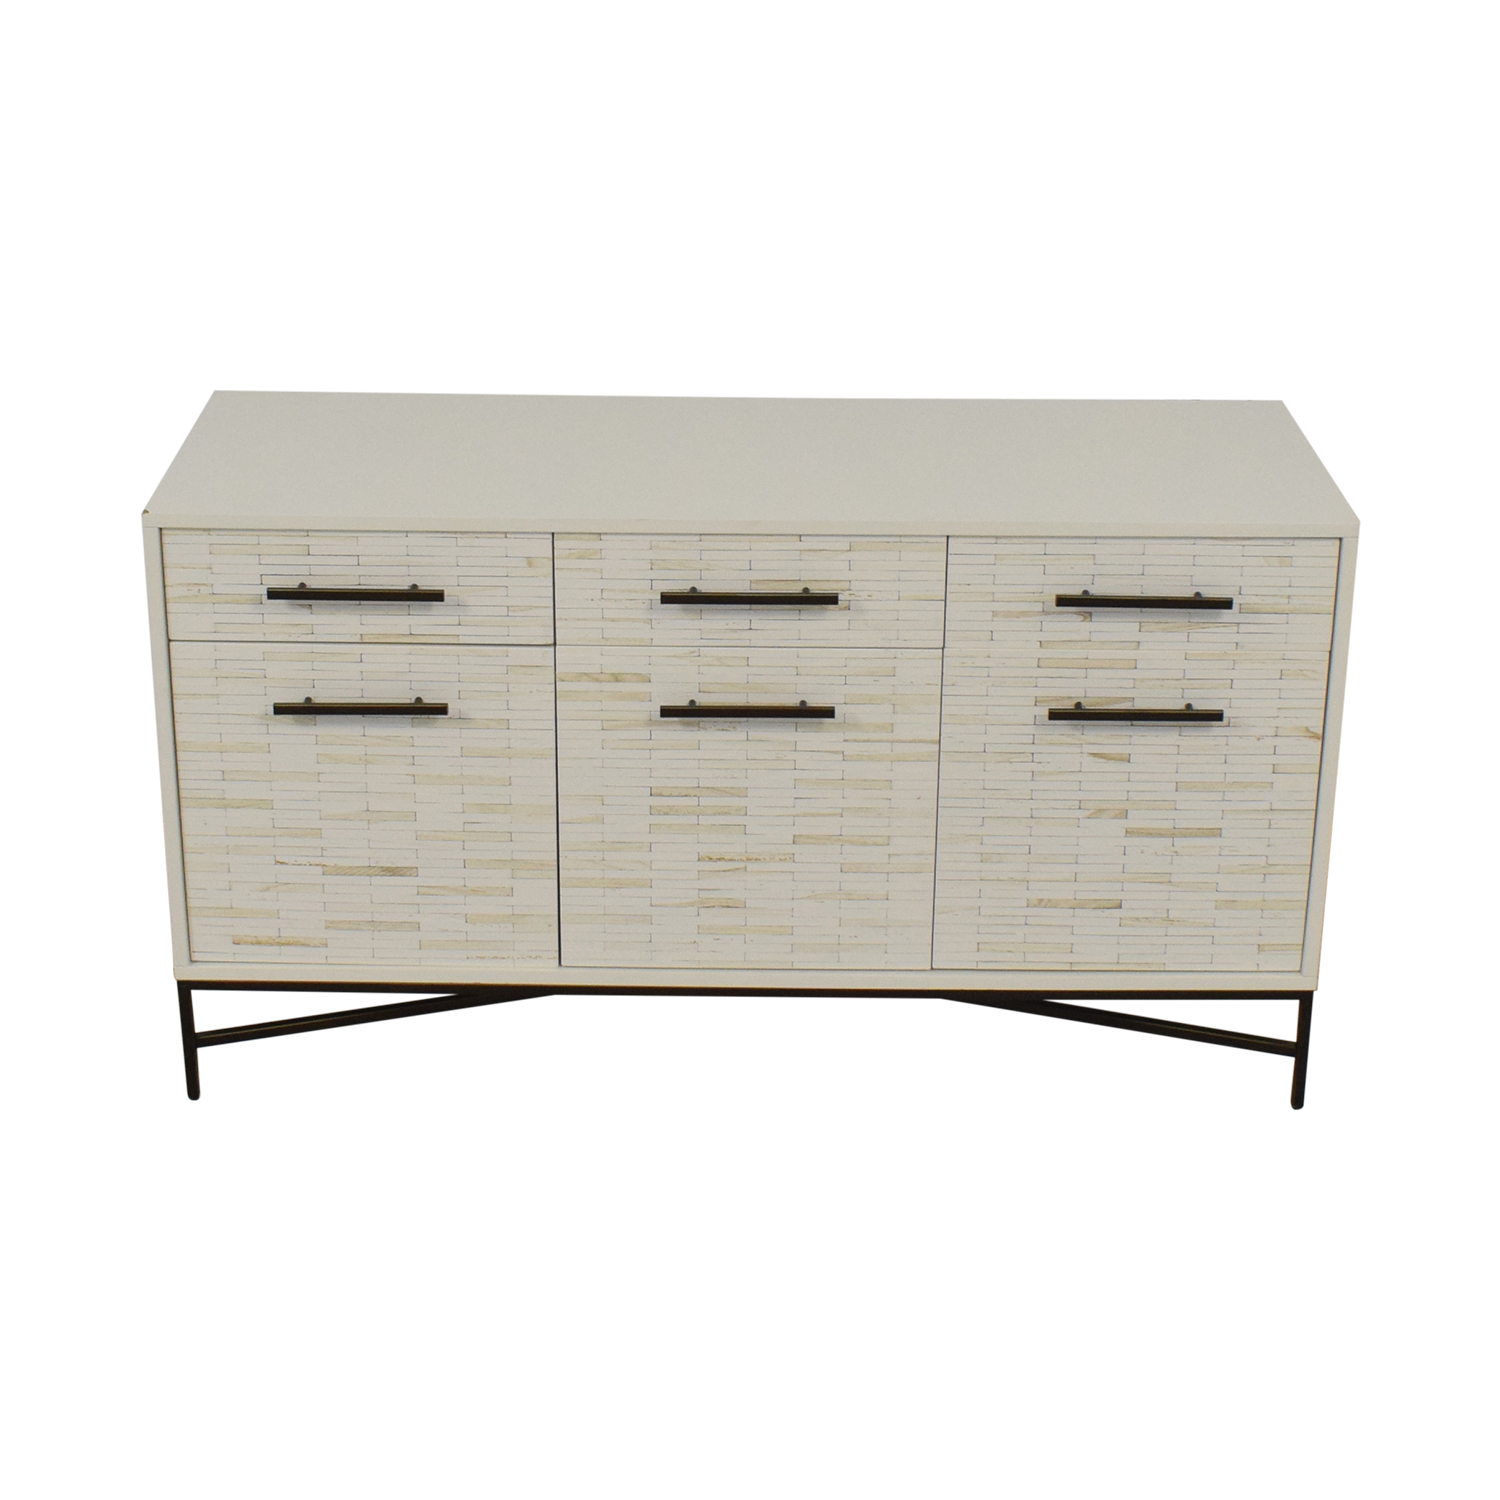 West Elm West Elm Tiled Media Console on sale